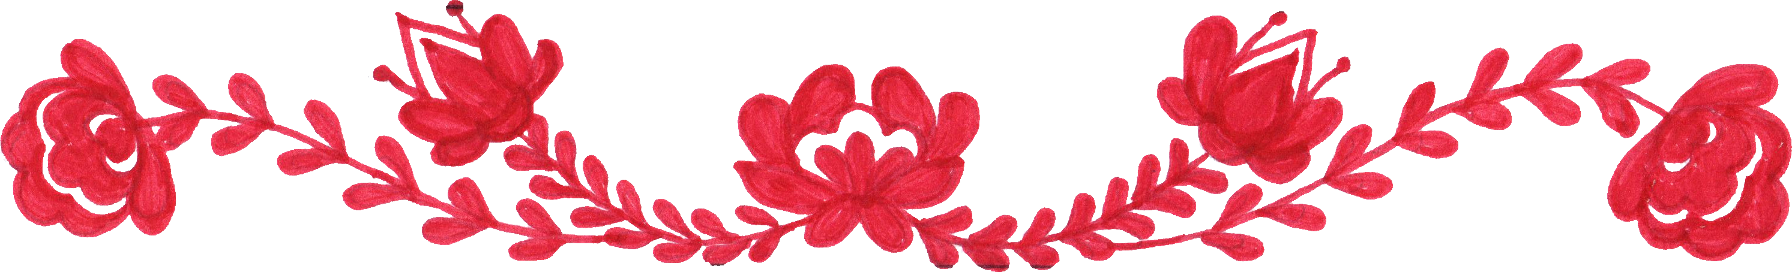 8 Red Flower Border Drawing Png Transparent Onlygfx Com